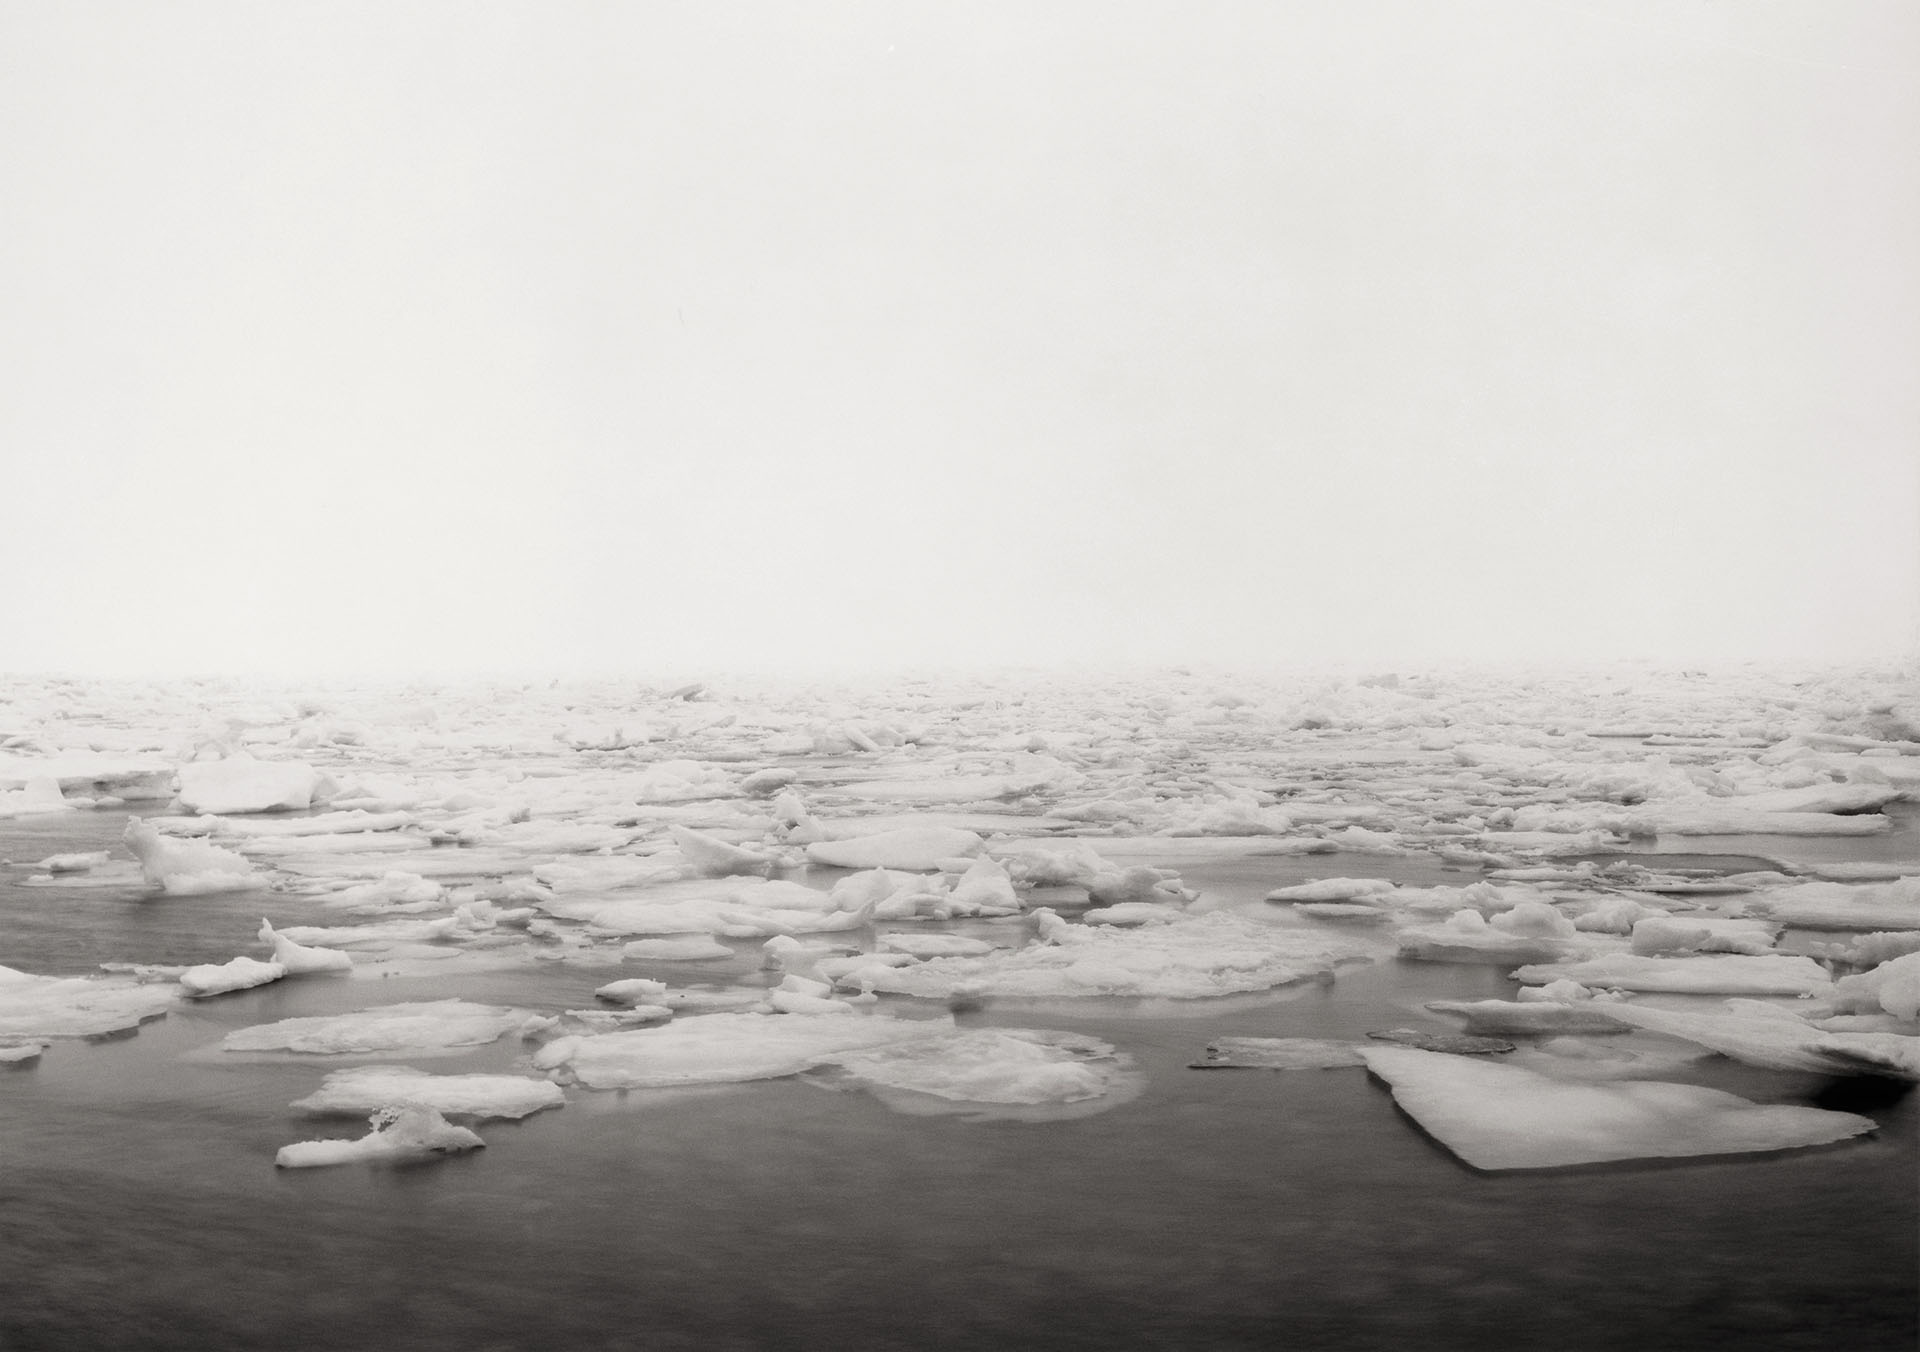 North! The First Landing Site, Afternoon Drifting Fog, the Spring Equinoctial Ice Flow—The North Atlantic Ocean | The World's Edge | Thomas Joshua Cooper | STIRworld